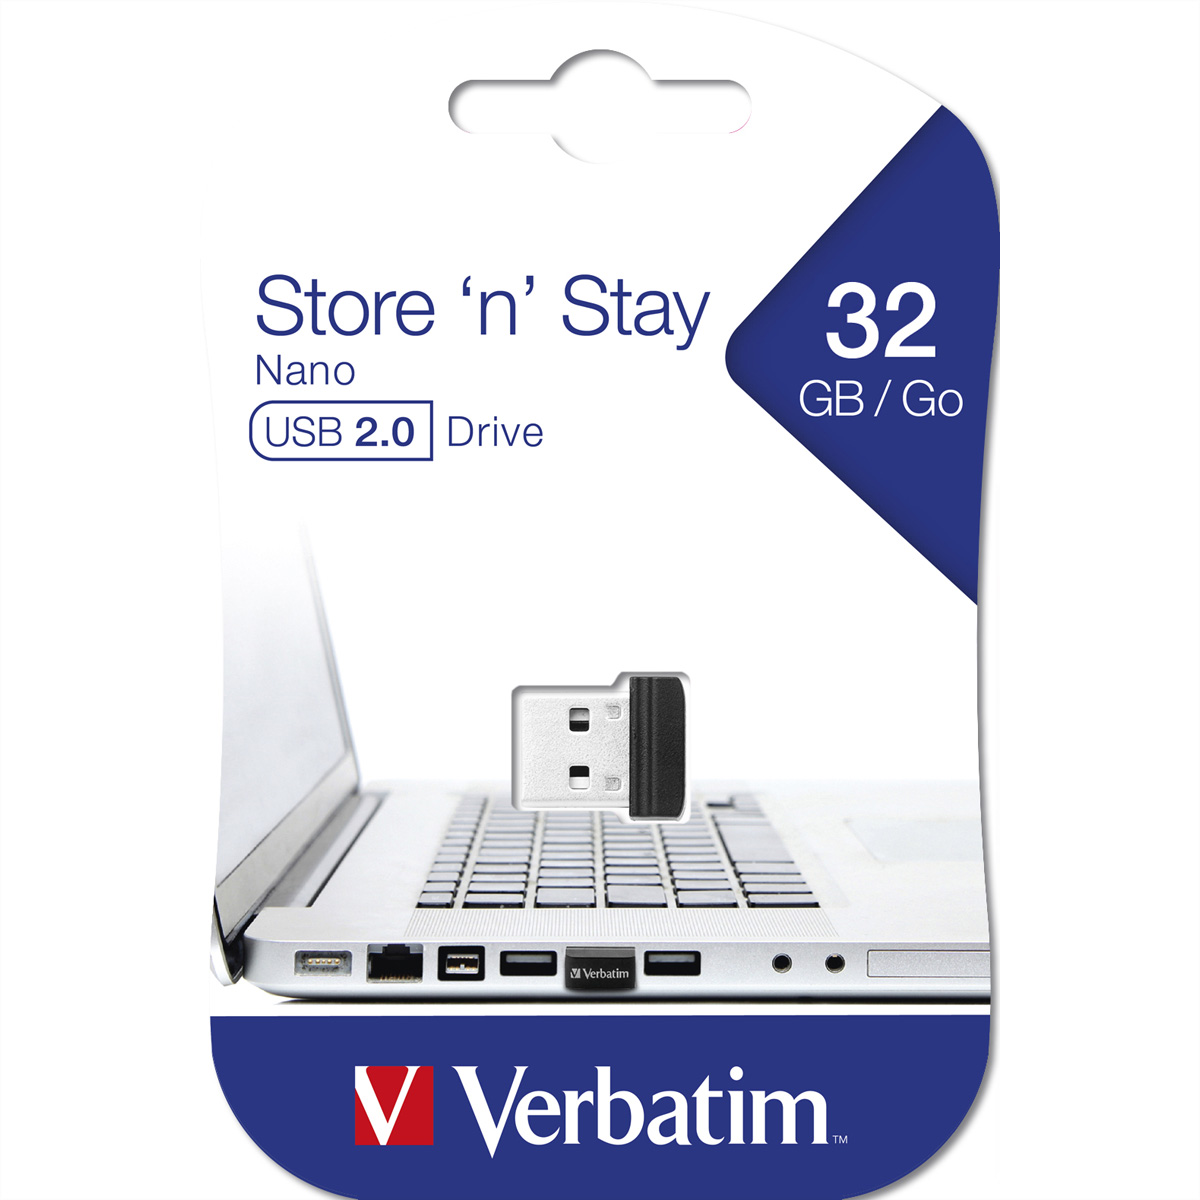 VERBATIM Store ''n'' Stay Nano USB 2.0, 32GB